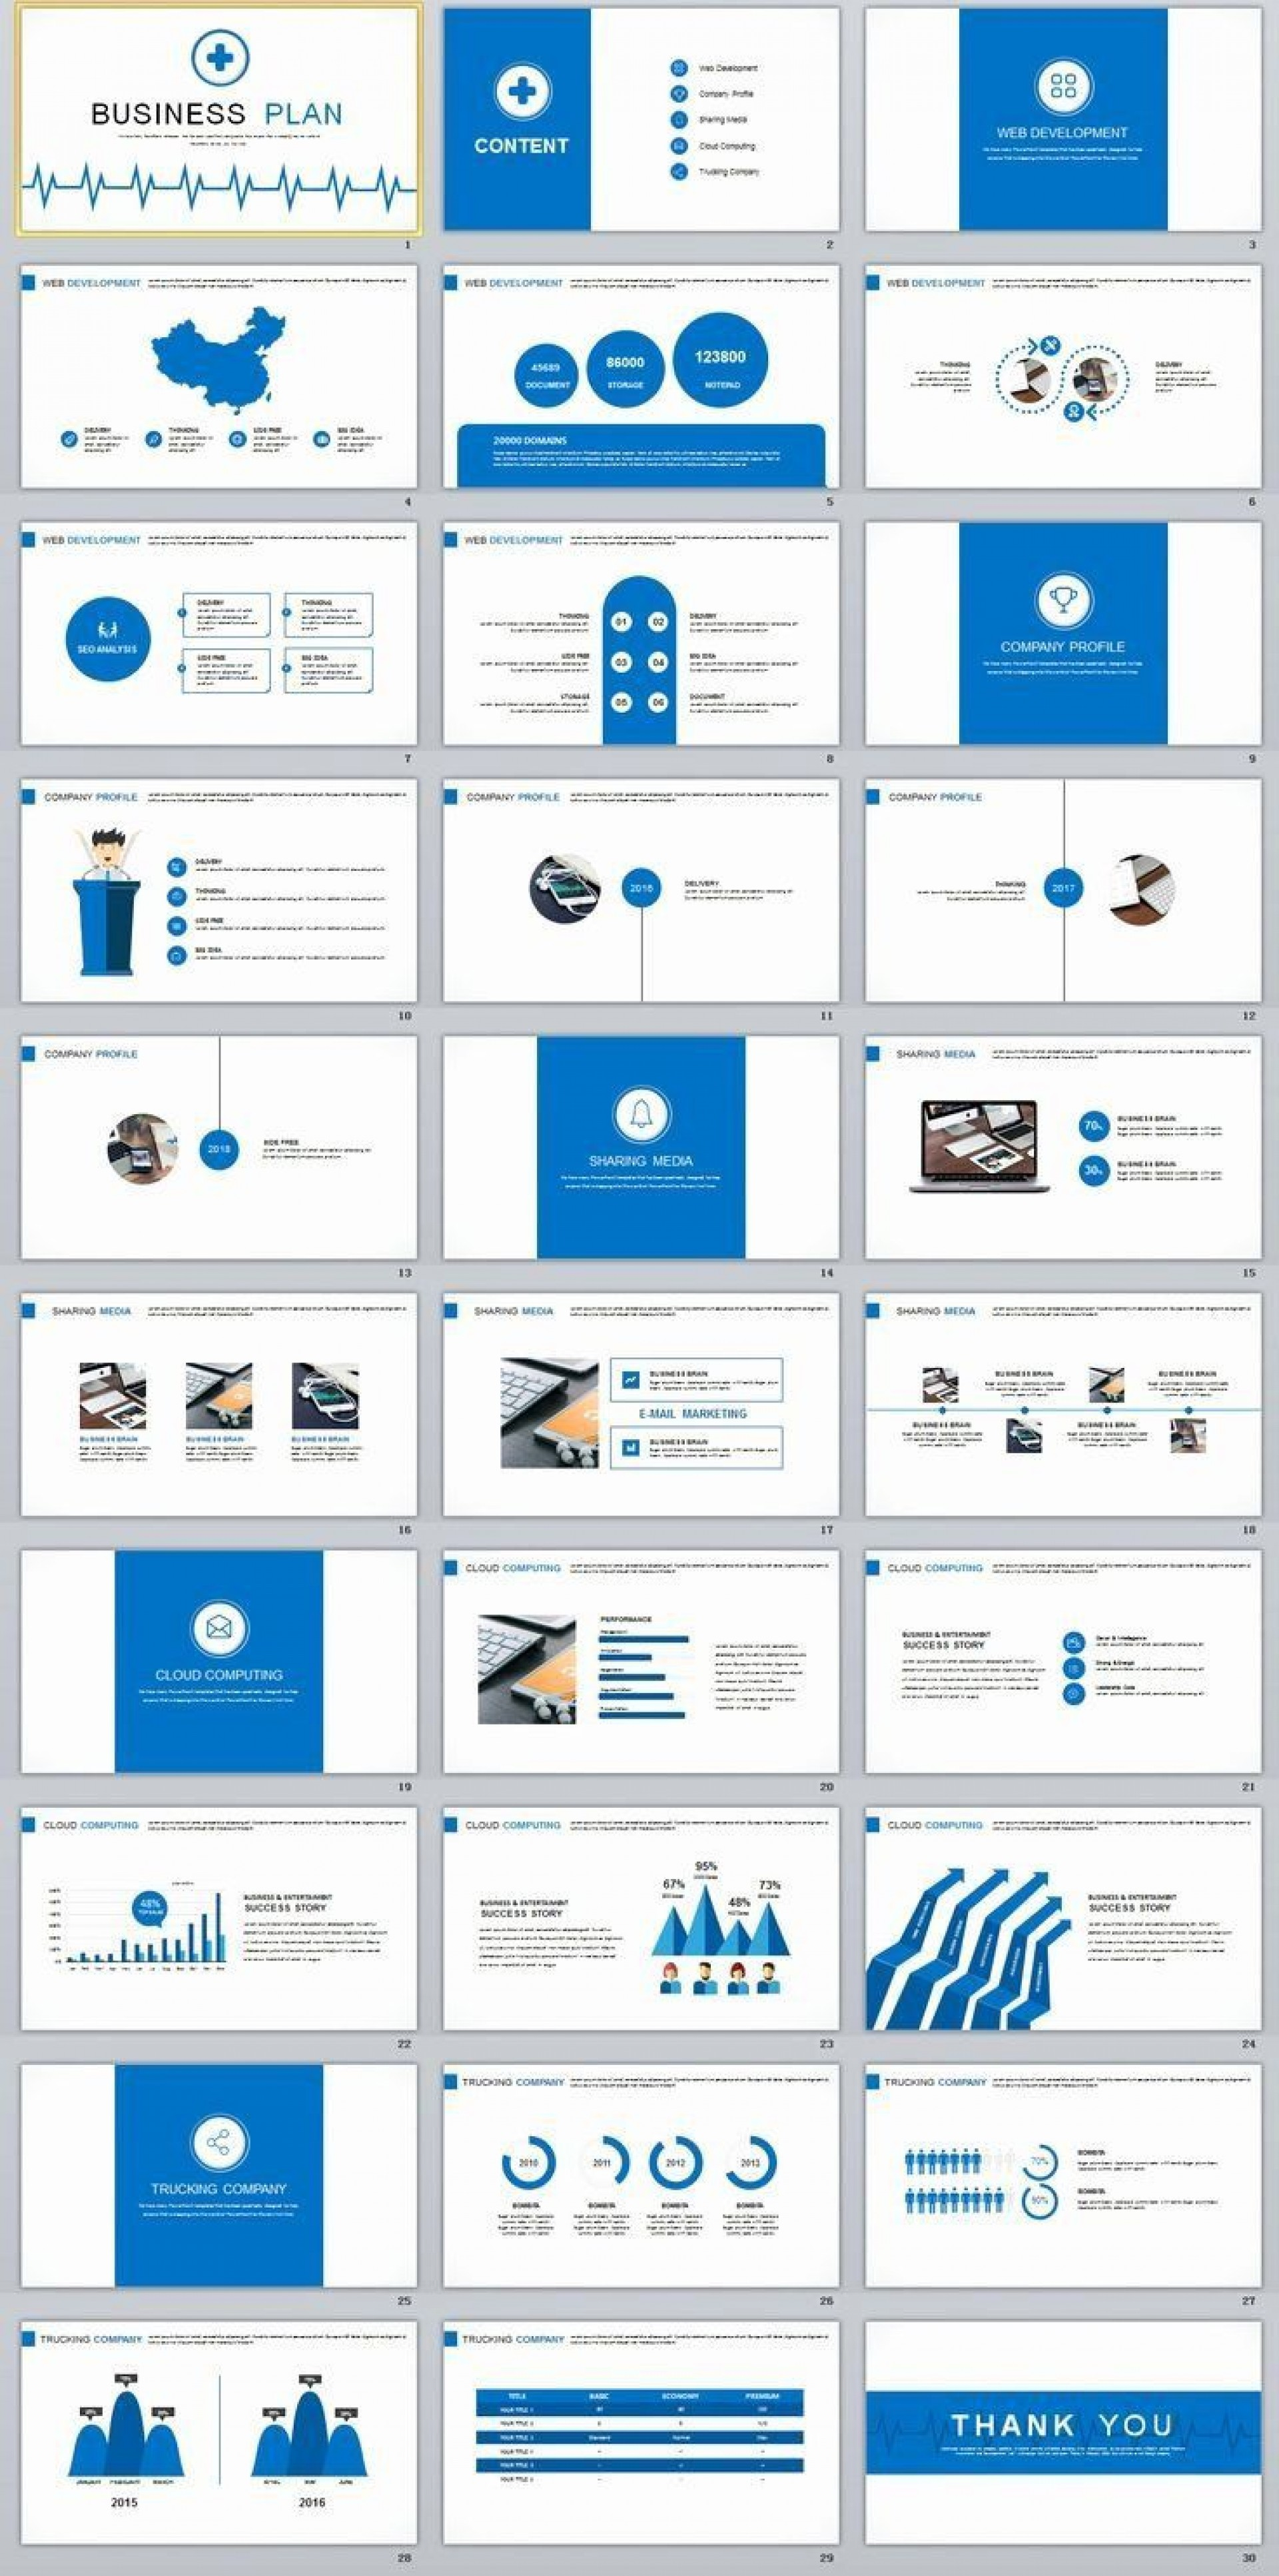 001 Amazing Best Busines Plan Template High Def  Ppt Free Download1920